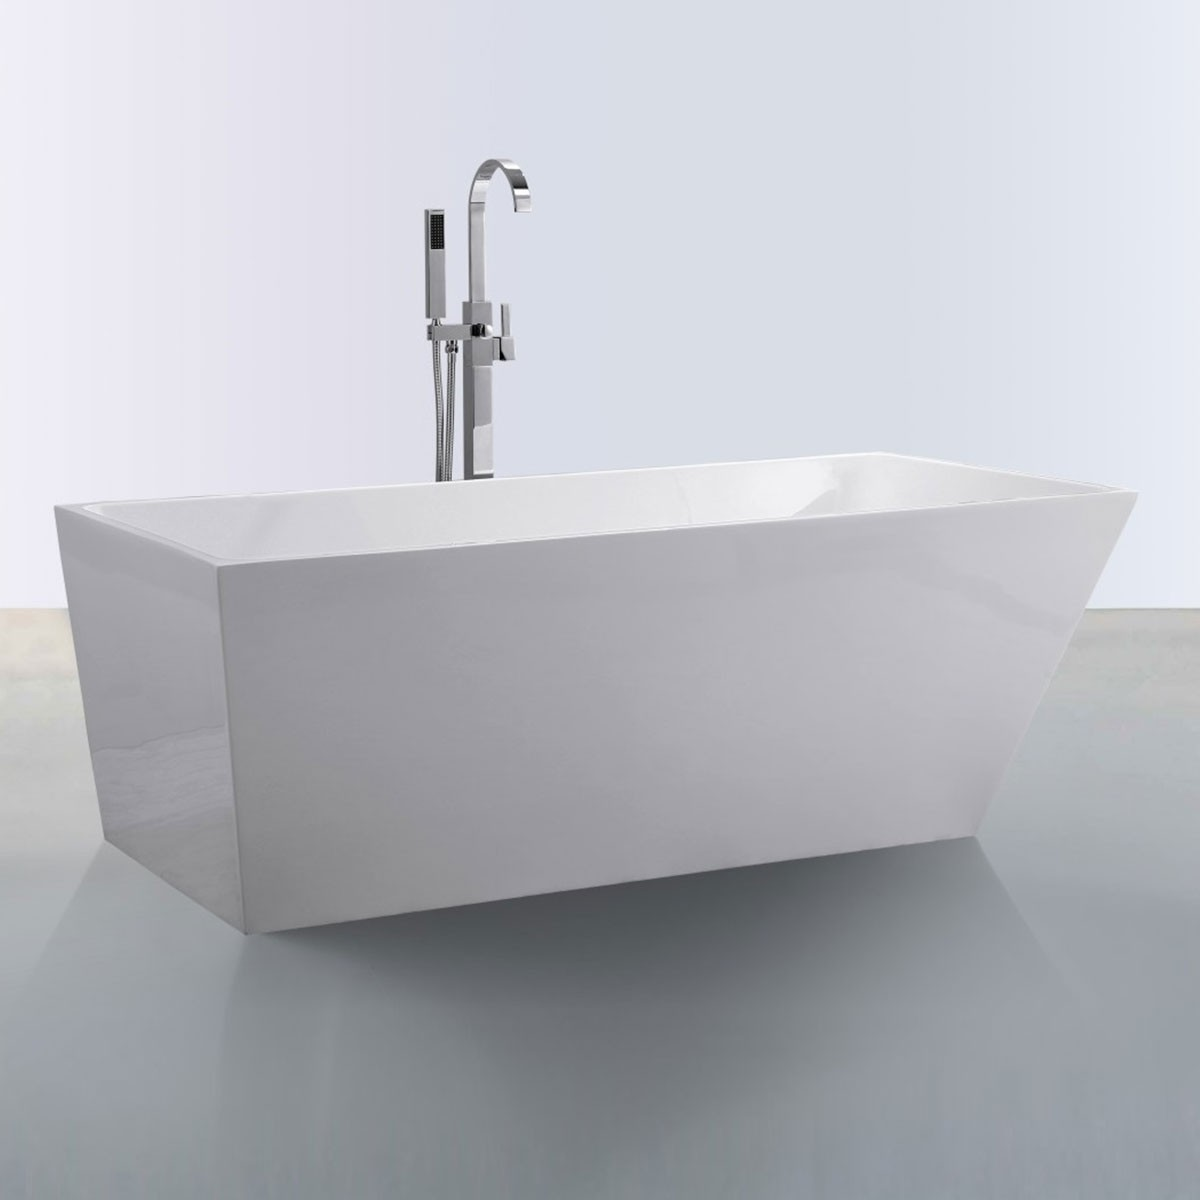 59 In Freestanding Bathtub - Acrylic White (DK-SLD-YG870-15)